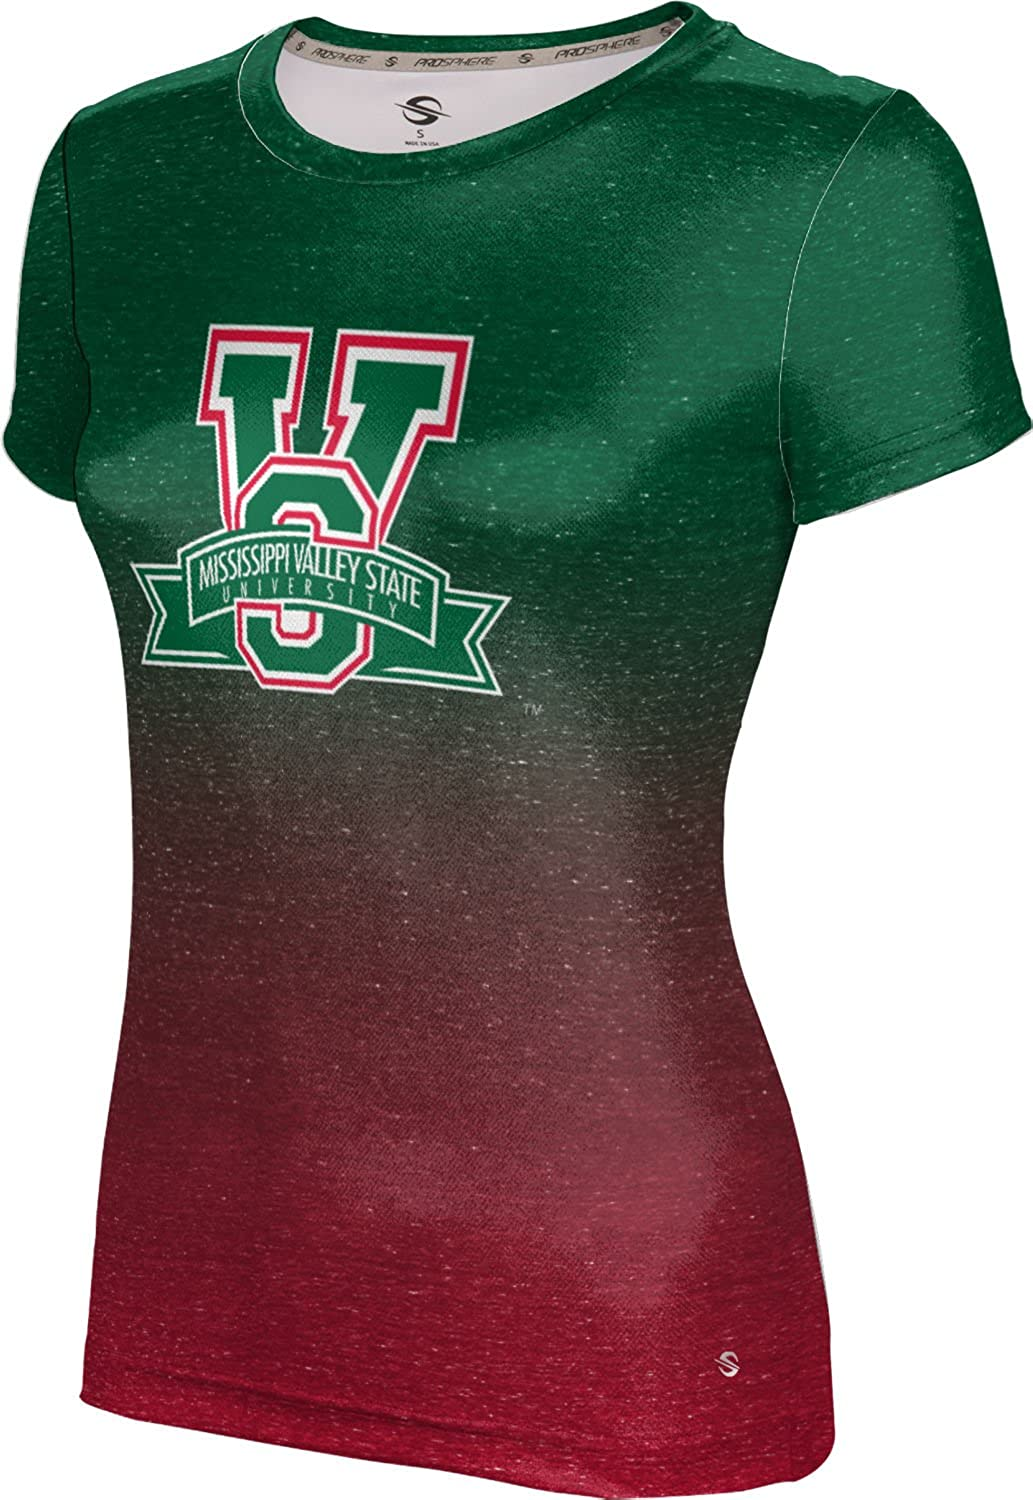 ProSphere Mississippi Valley State University Girls' Performance T-Shirt (Ombre)